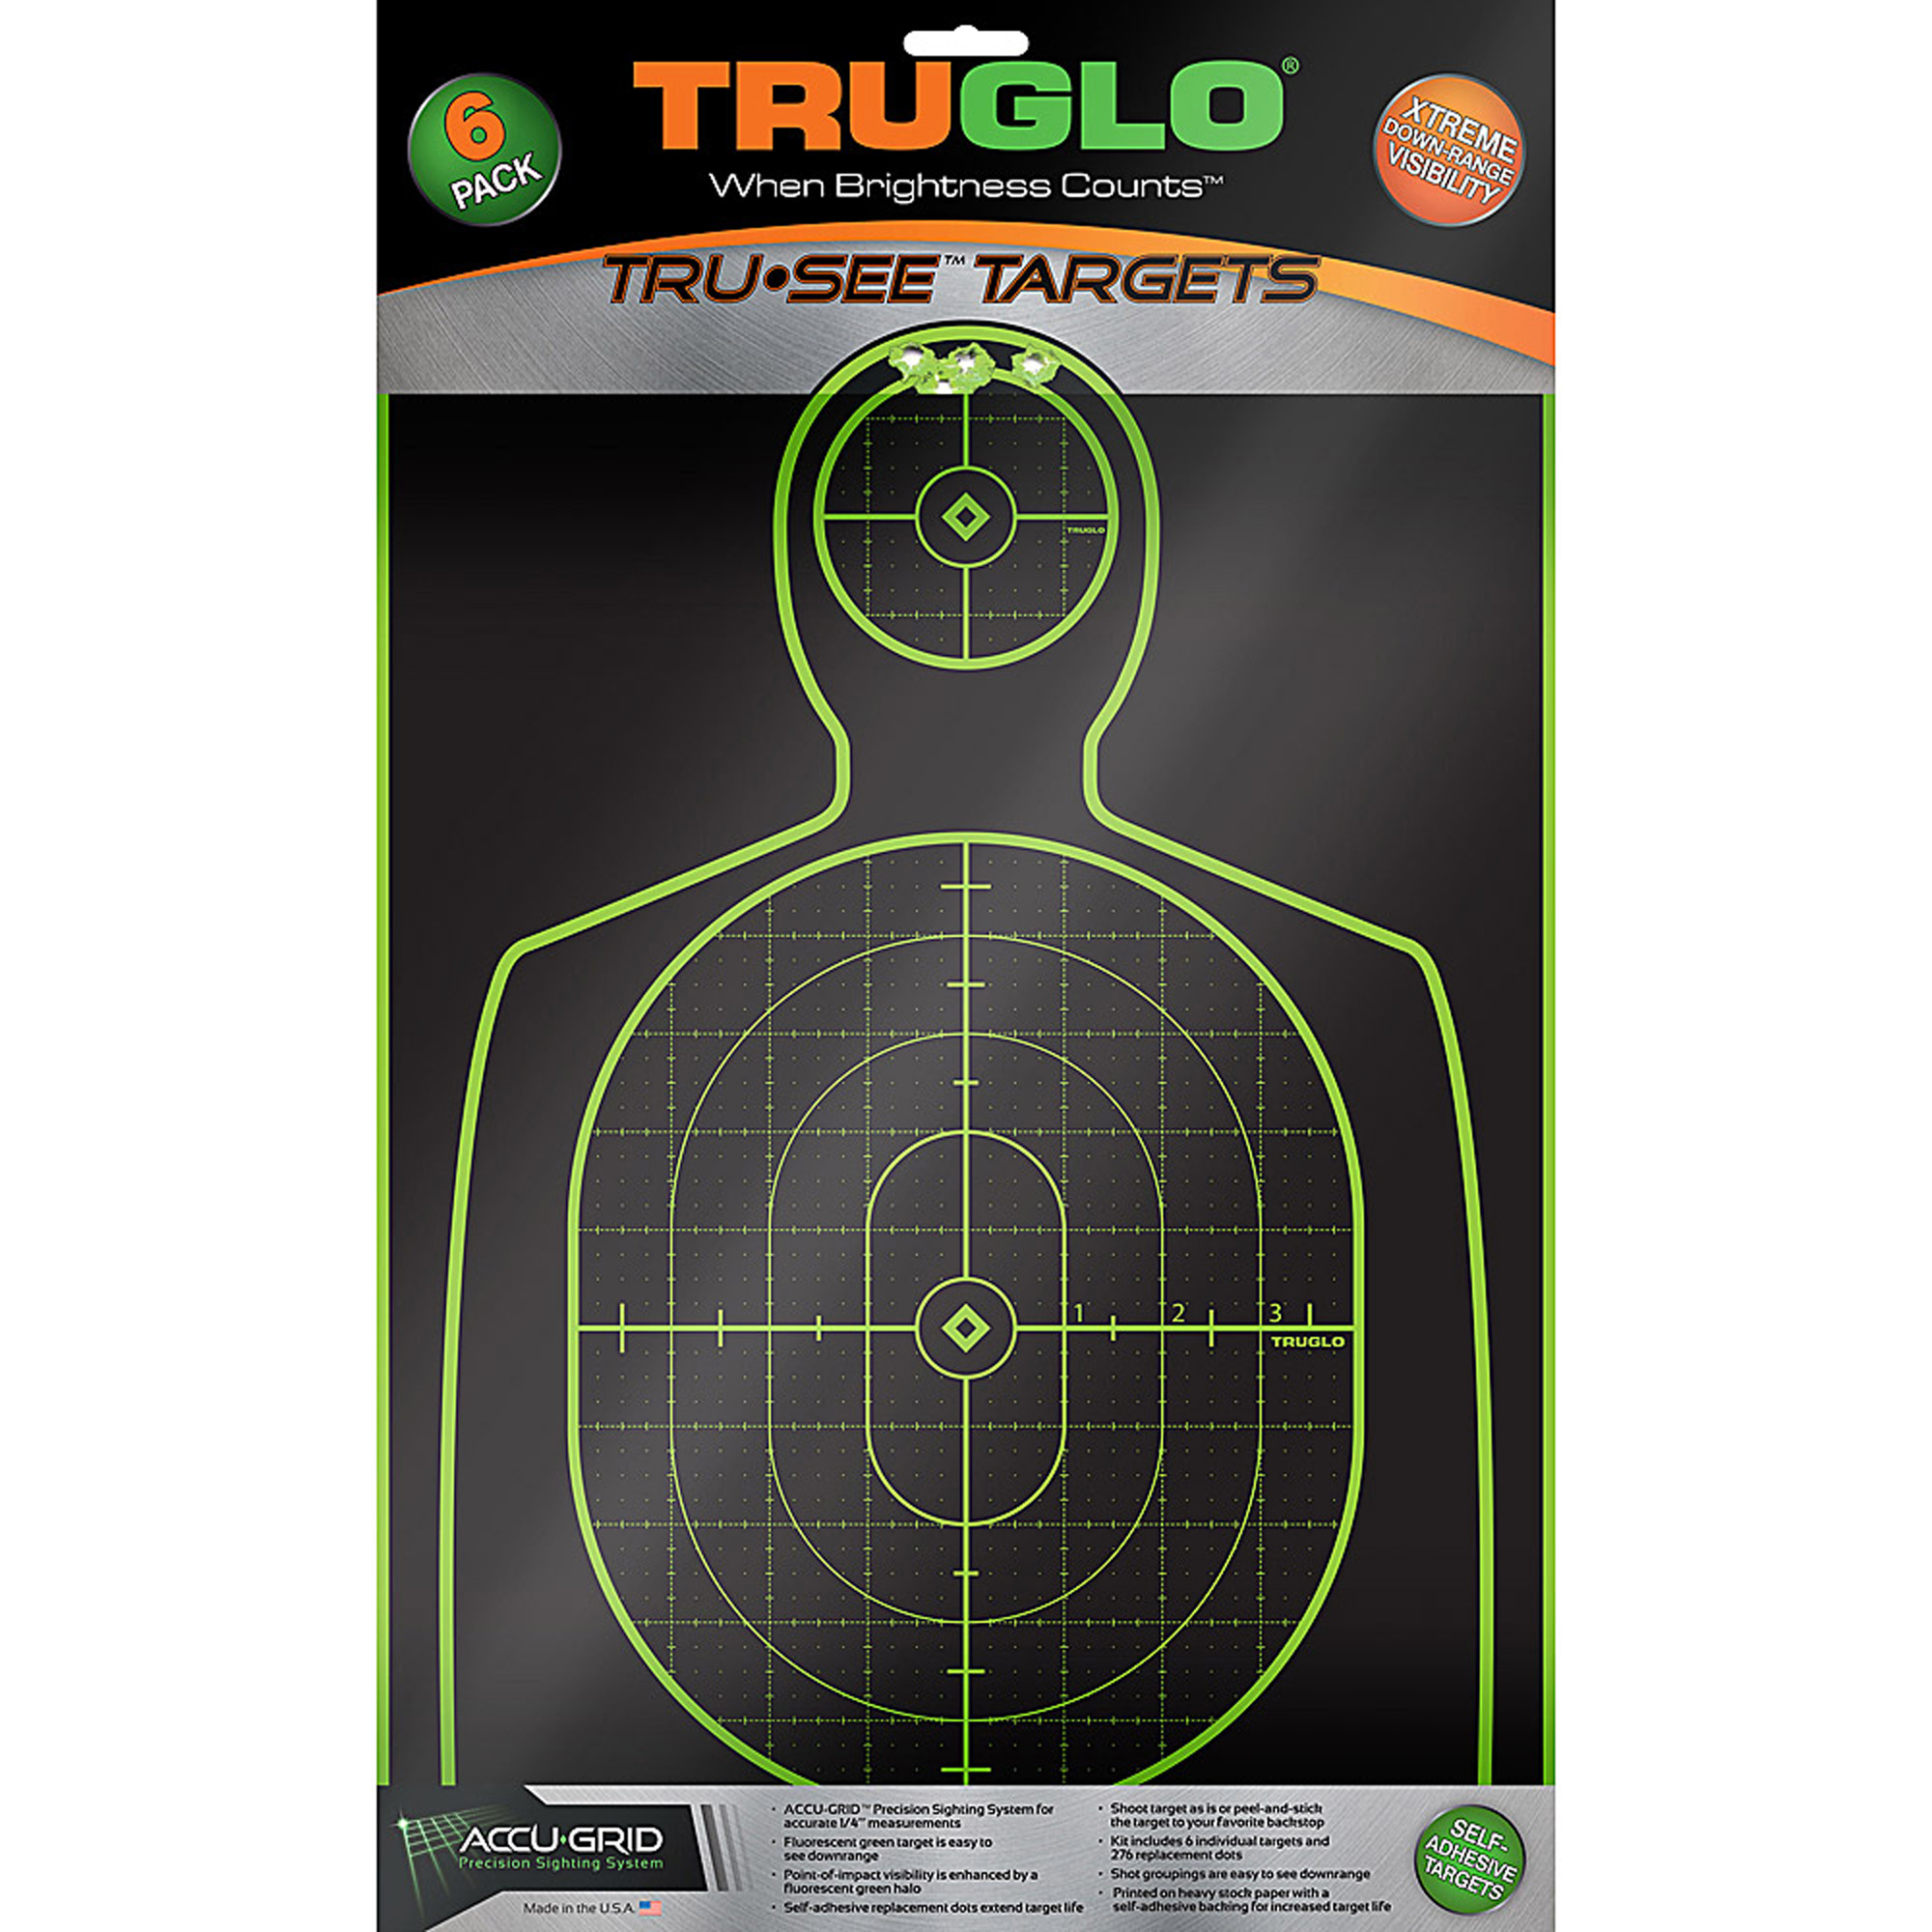 """These targets are ideal for shotguns"""" handguns"""" rifles"""" muzzleloaders"""" airsoft guns and crossbows. Point-of-impact visibility is enhanced by a fluorescent green halo and self-adhesive replacement dots extend target life. Shoot target as is or peel-and-stick the target to your favorite backstop."""